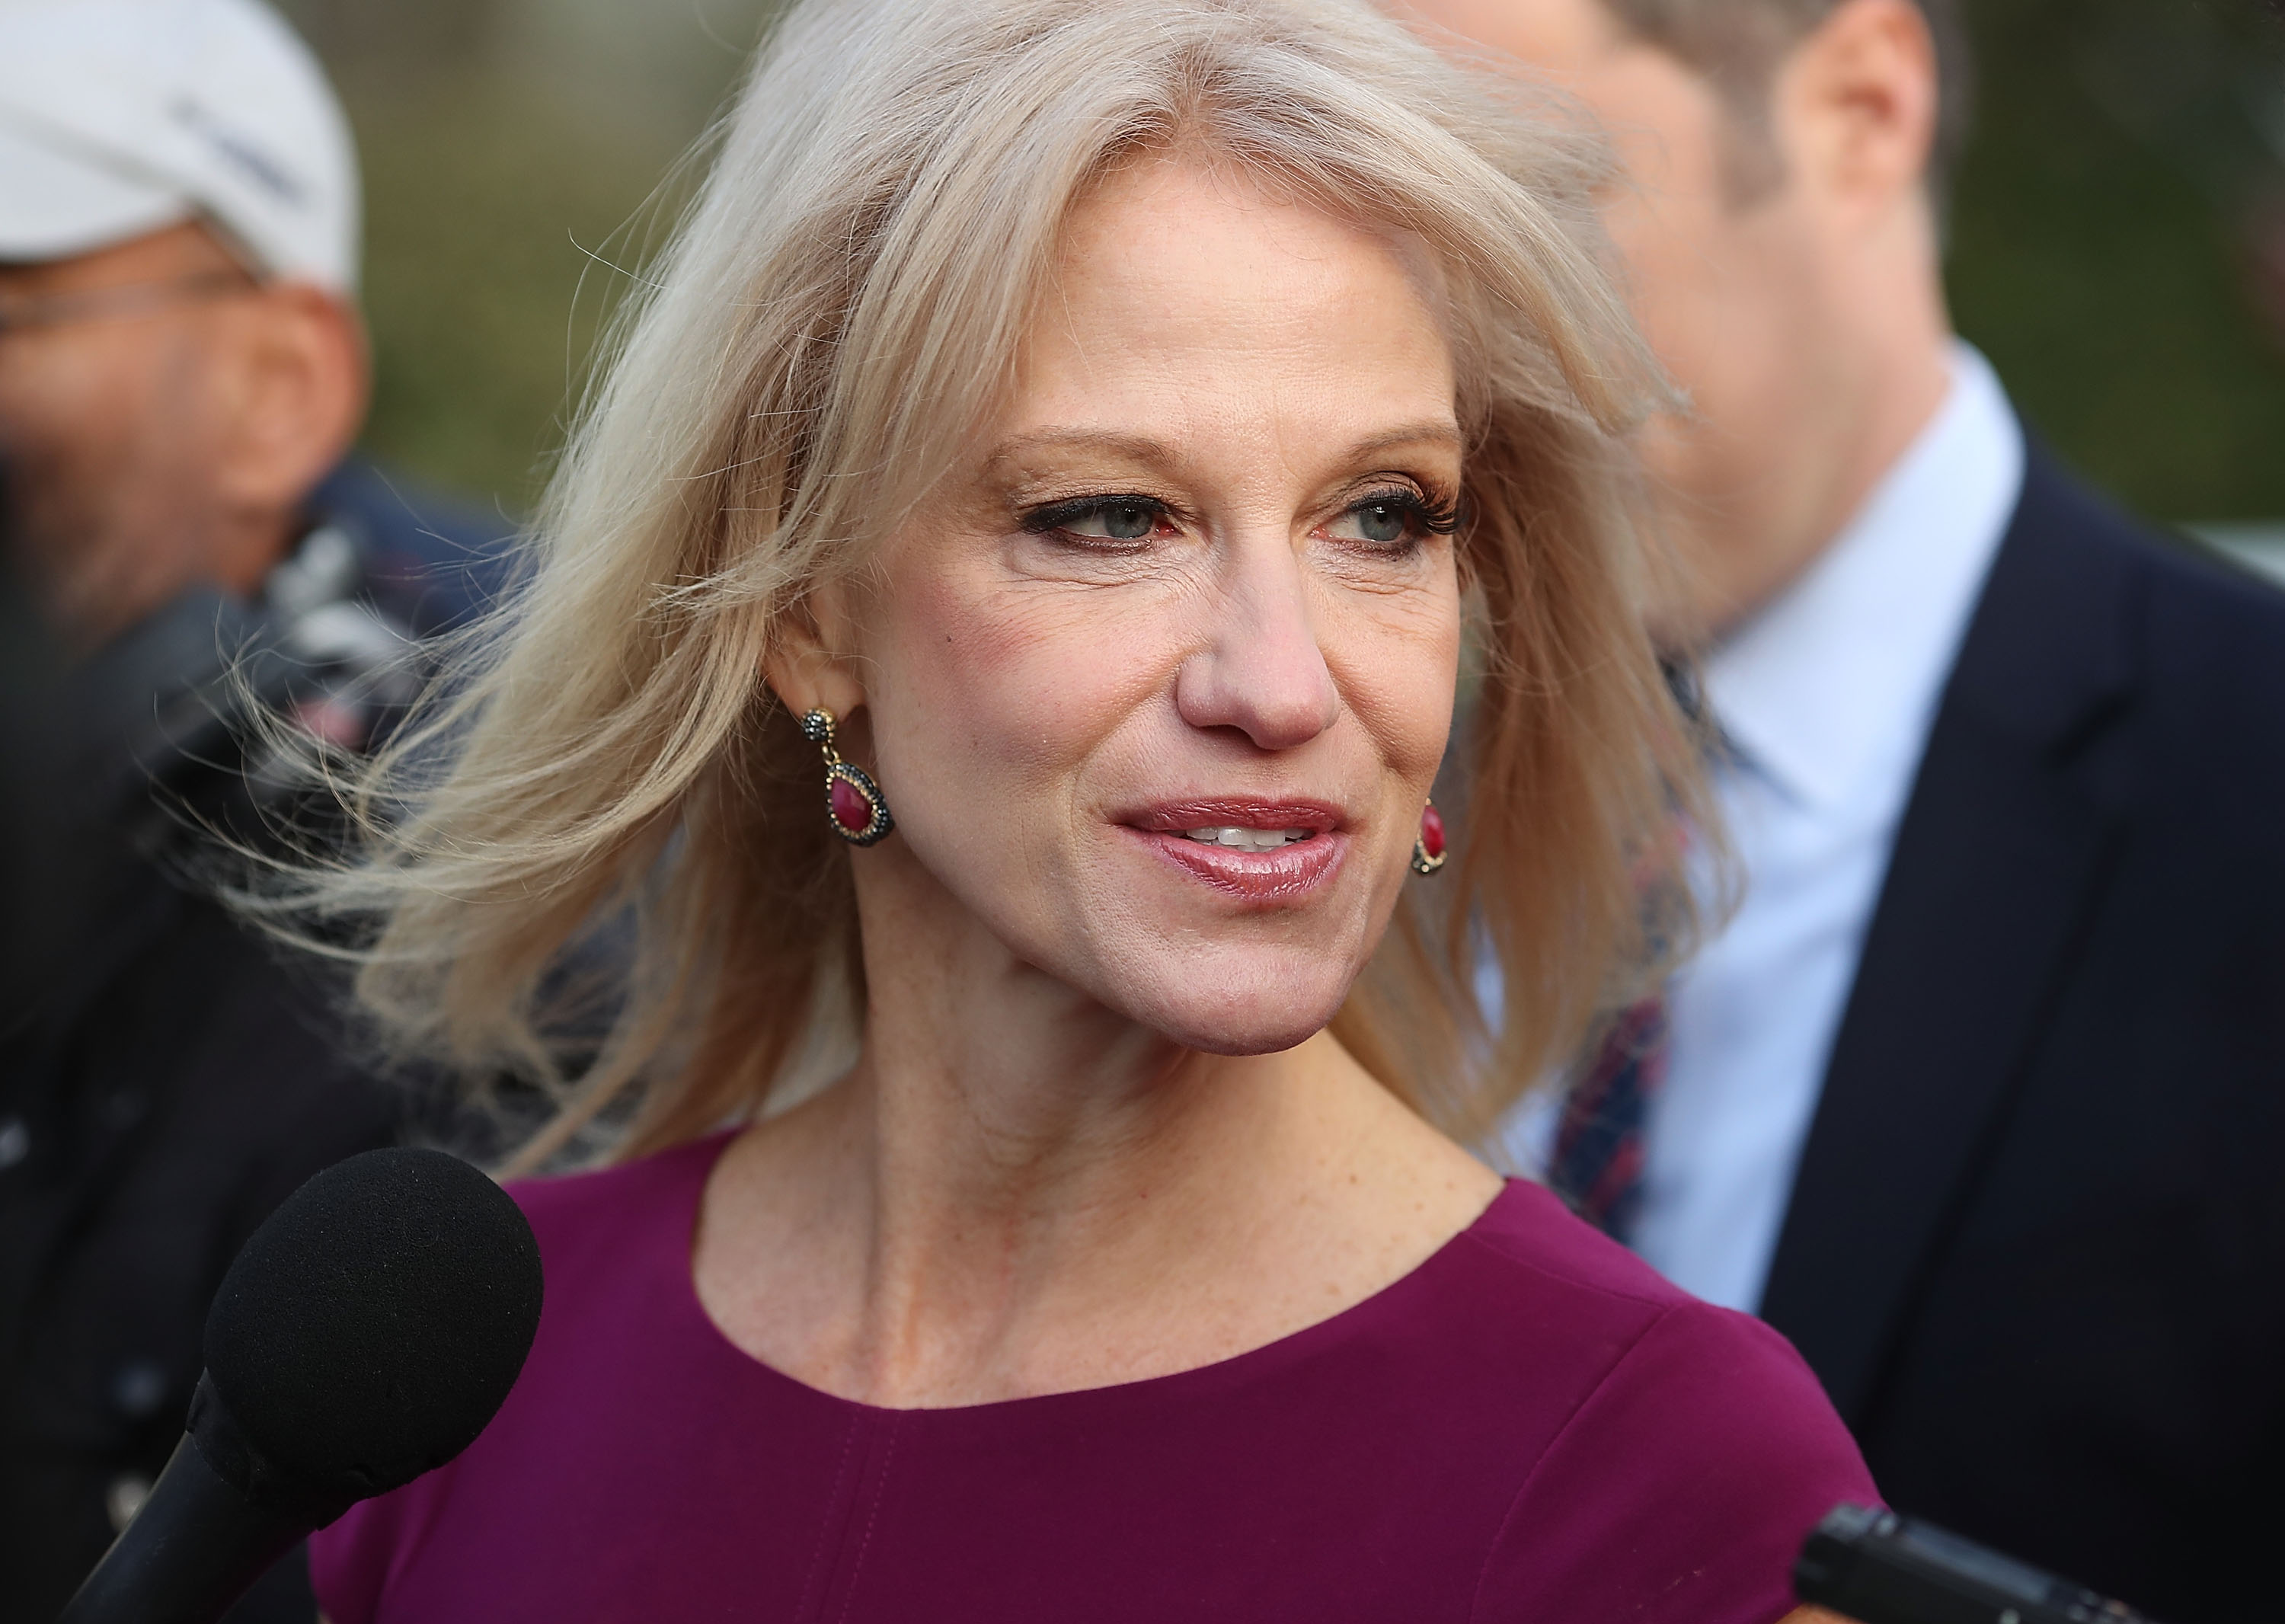 White House Counselor Kellyanne Conway speaks to reporters on the White House driveway after doing a television interview, on April 13, 2018, in Washington, DC. (Getty Images)